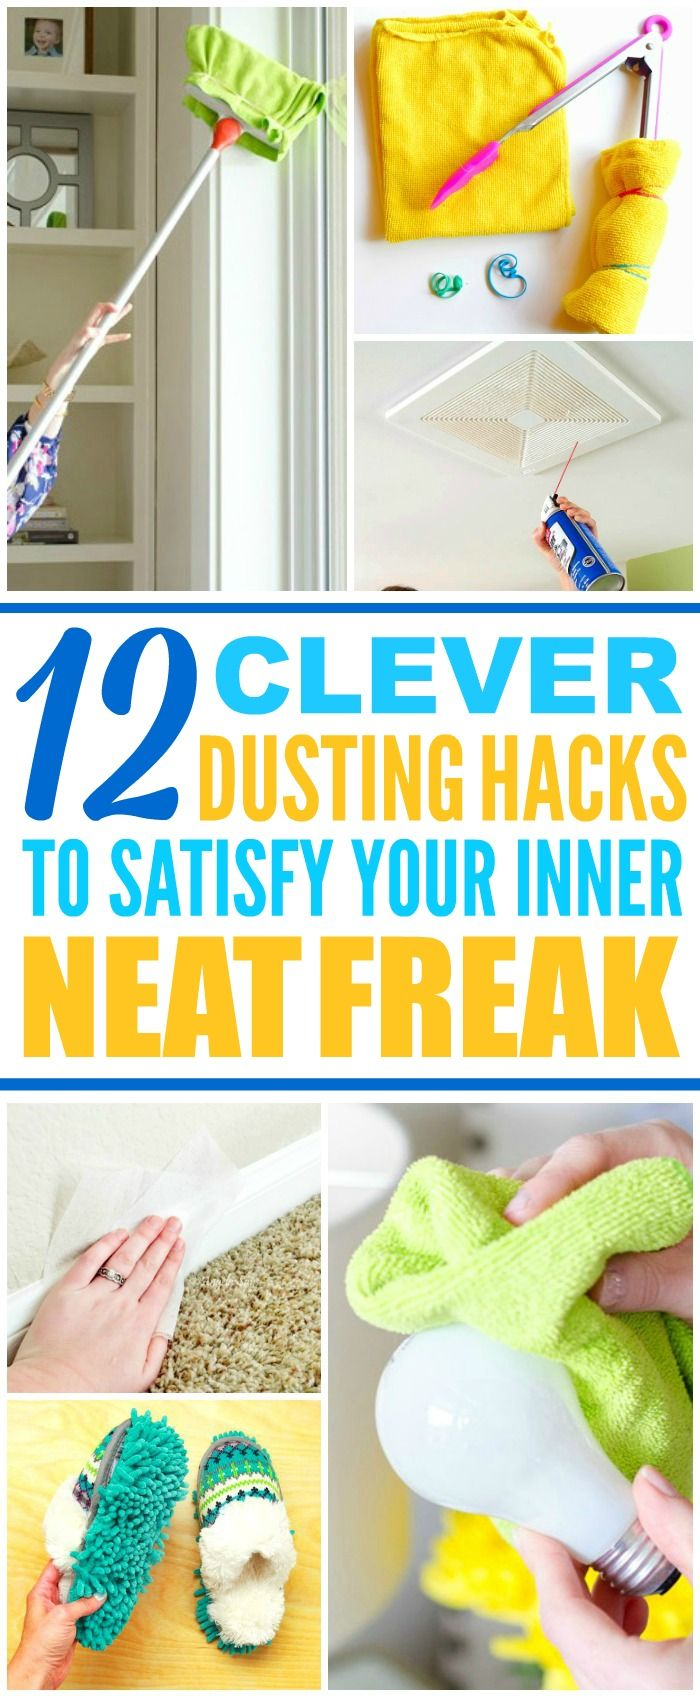 These 10 brilliant and easy dusting hacks are THE BEST! Now I have some GREAT ways to clean my home! These cleaning tips and tricks make cleaning my house so much quicker and easier! Definitely pinning!